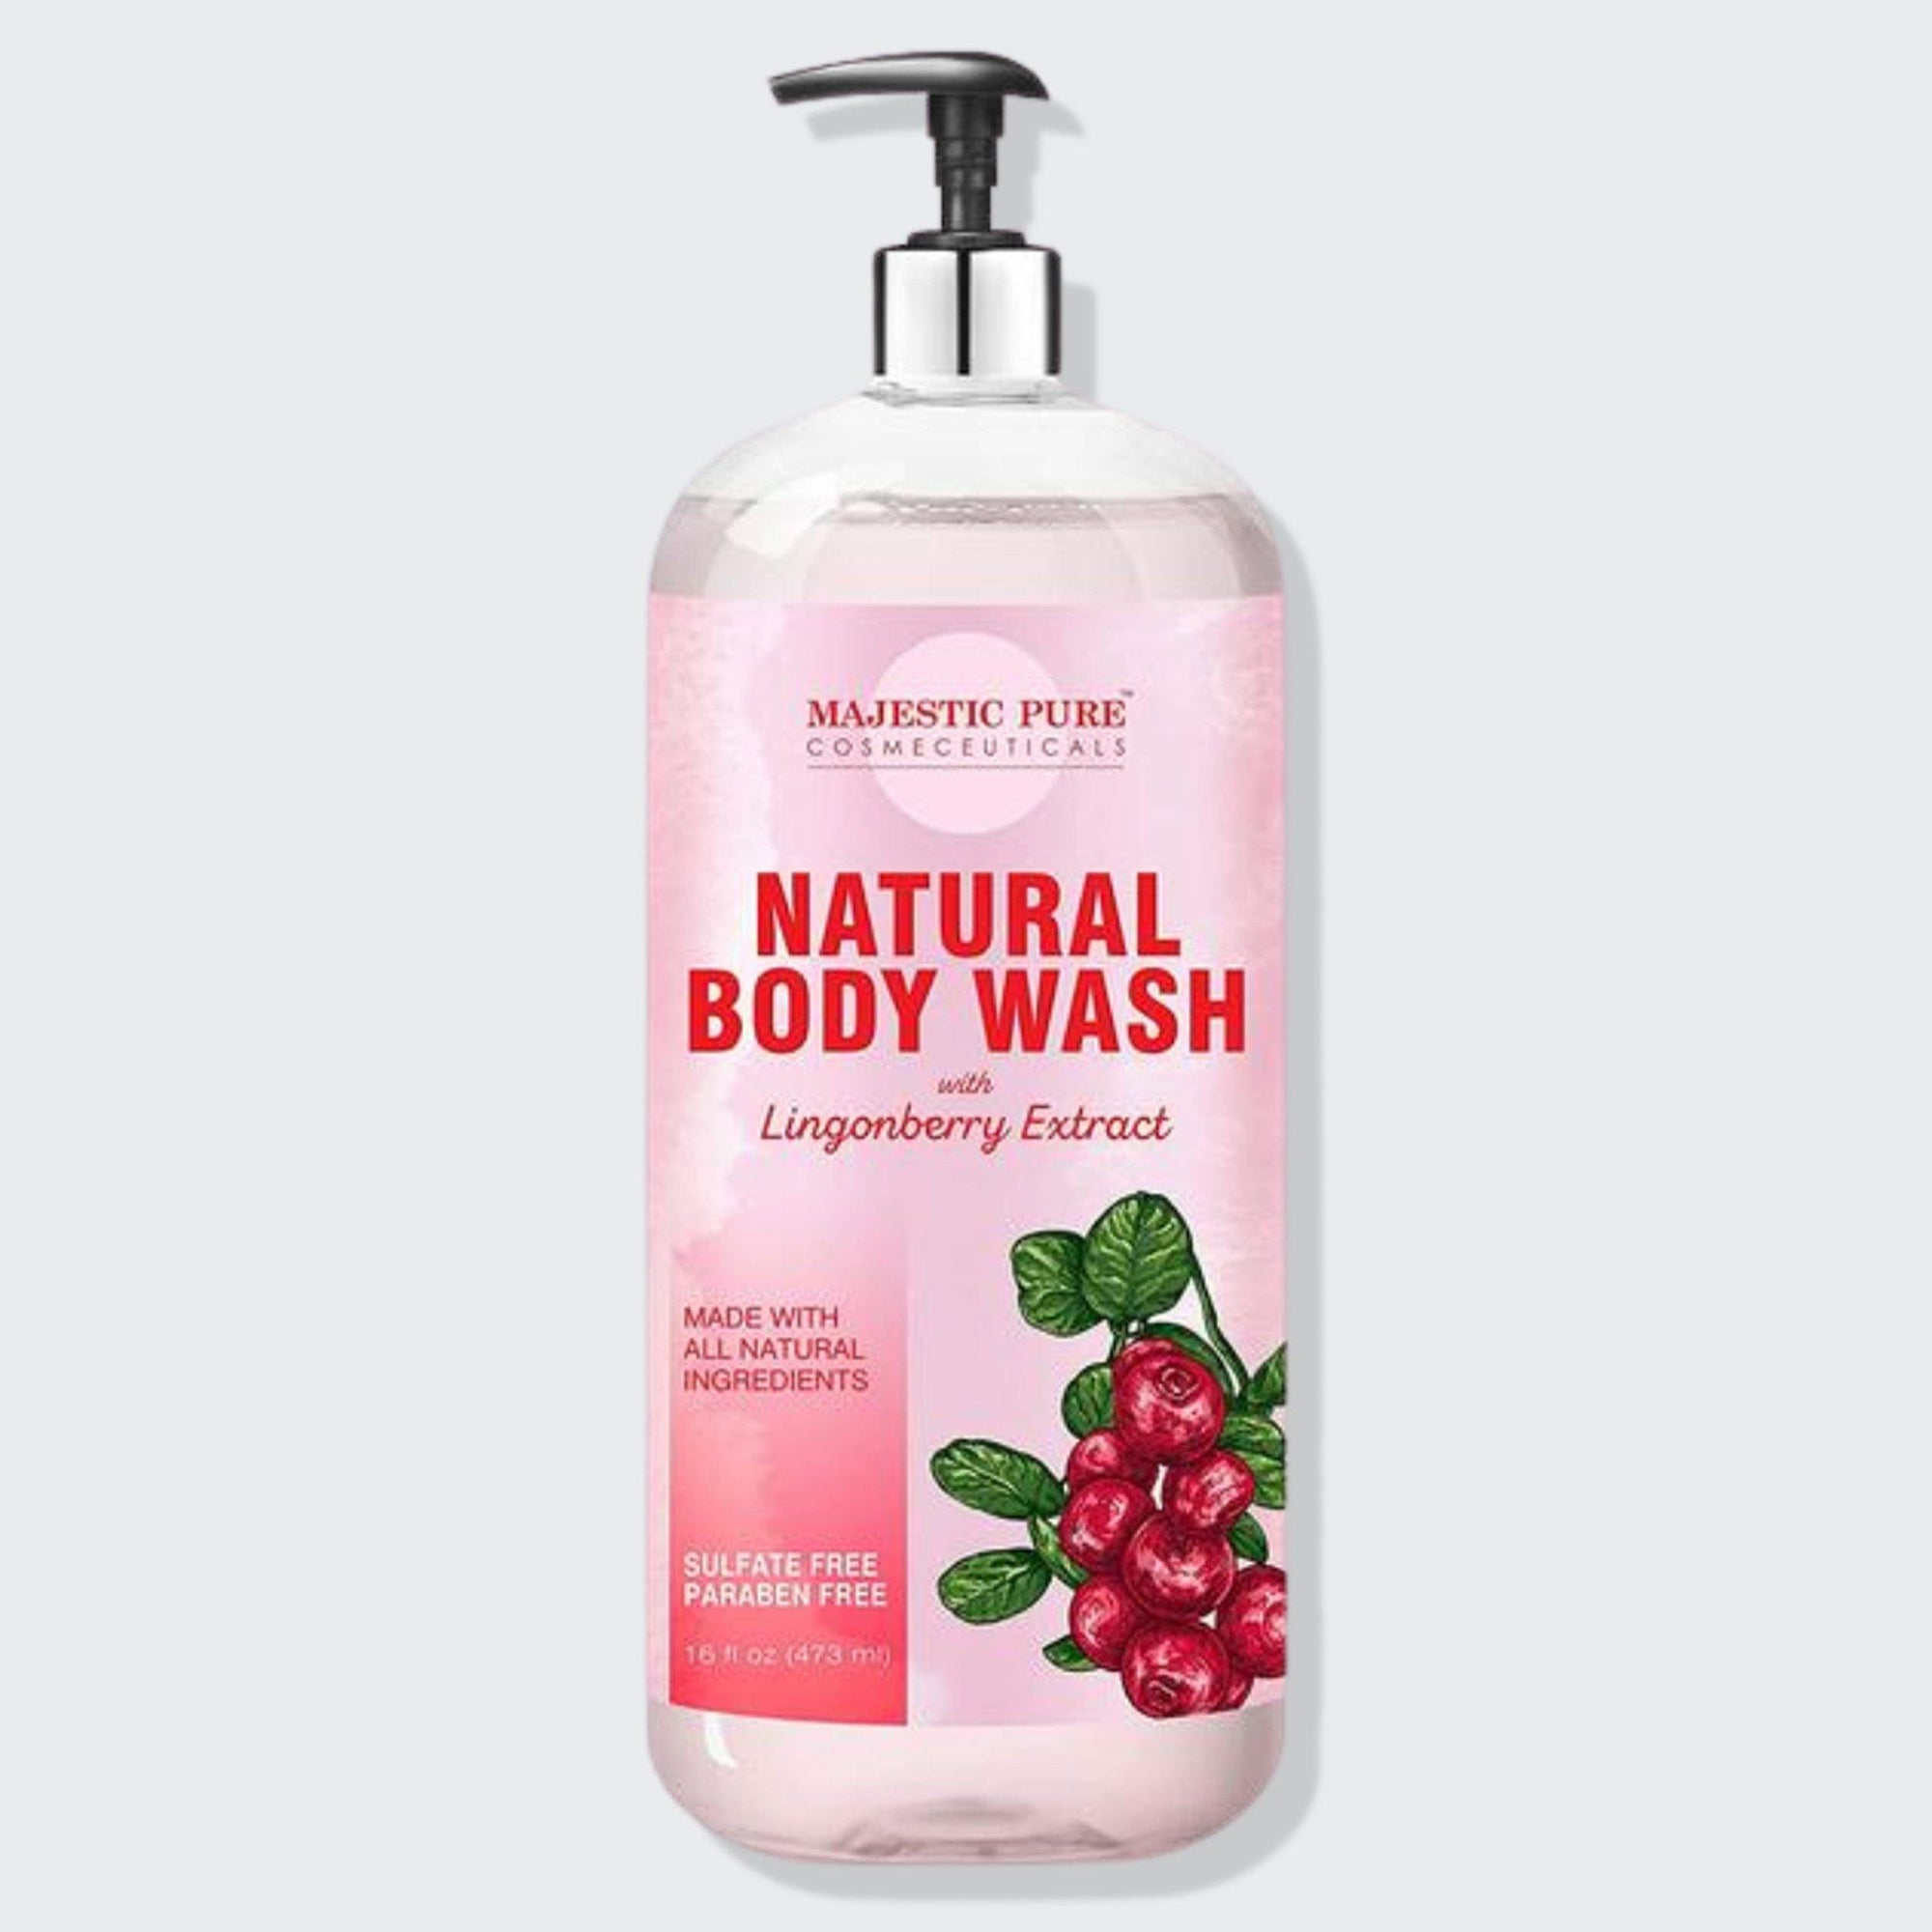 Natural Body Wash w/ Lingonberry Extract